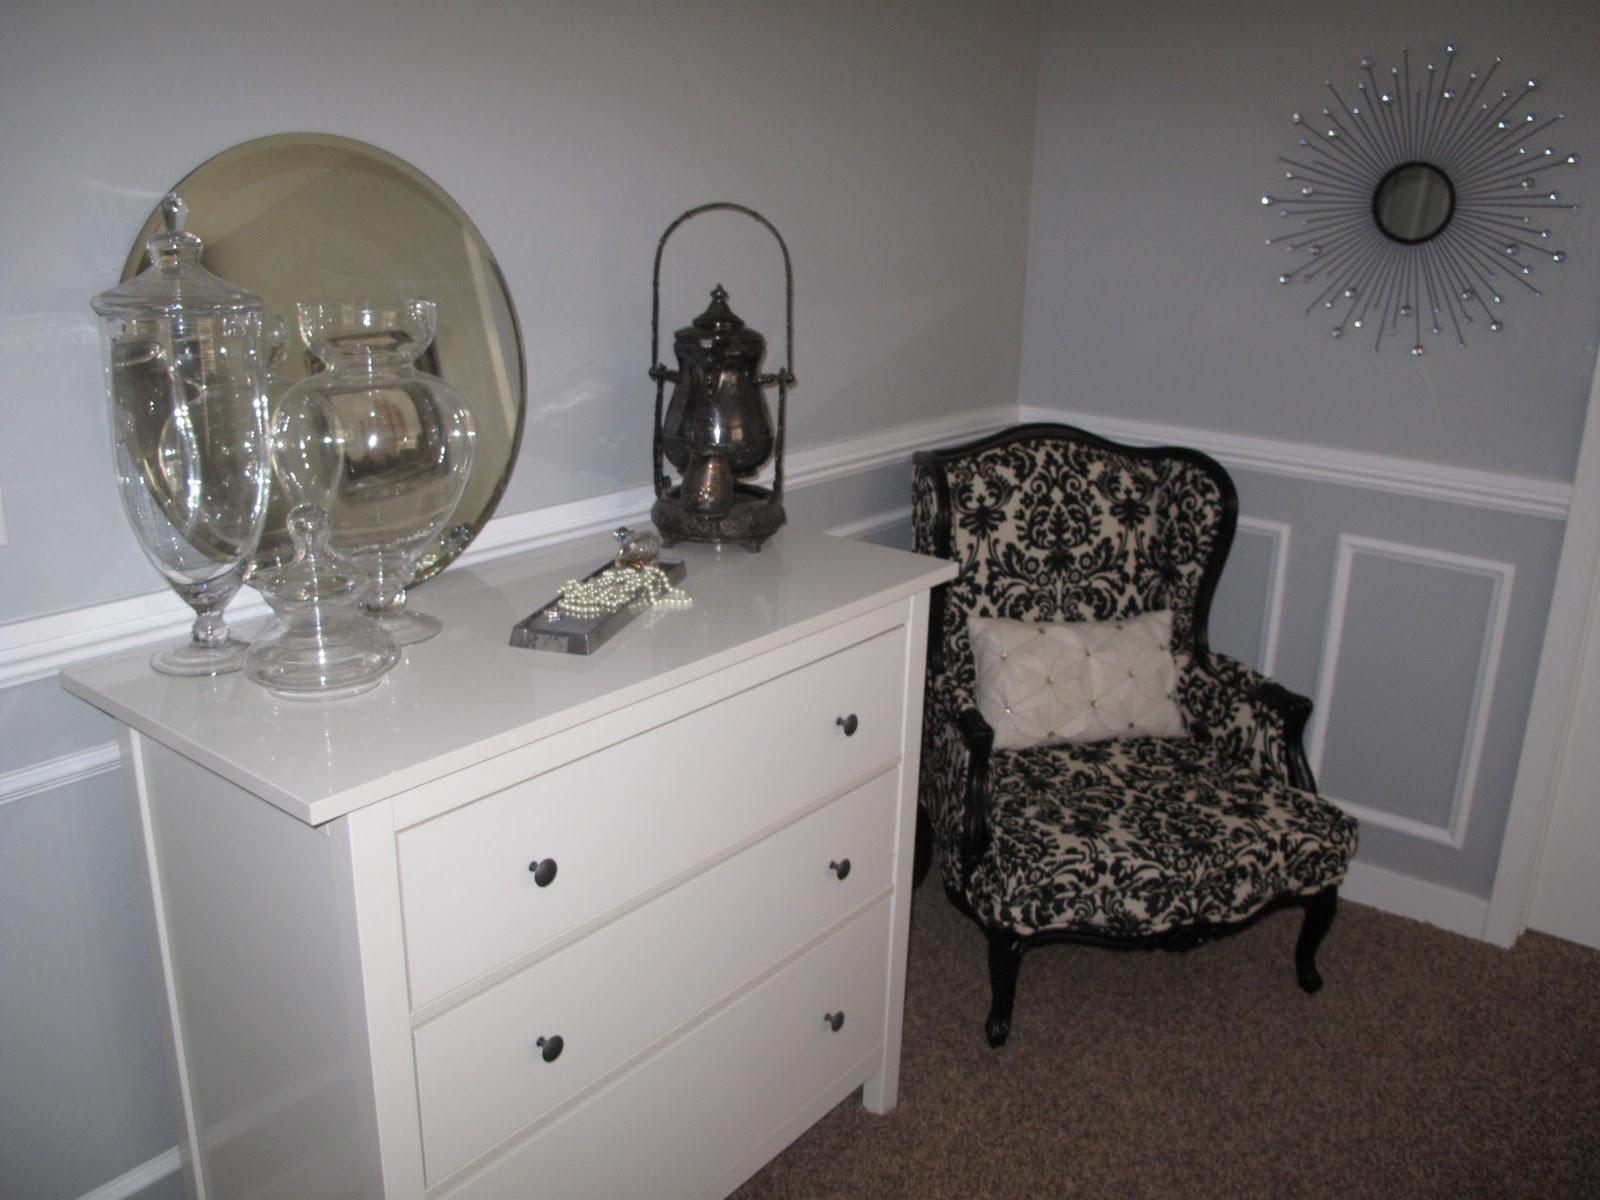 bedroom remodel for 539 including chair rail and picture frame